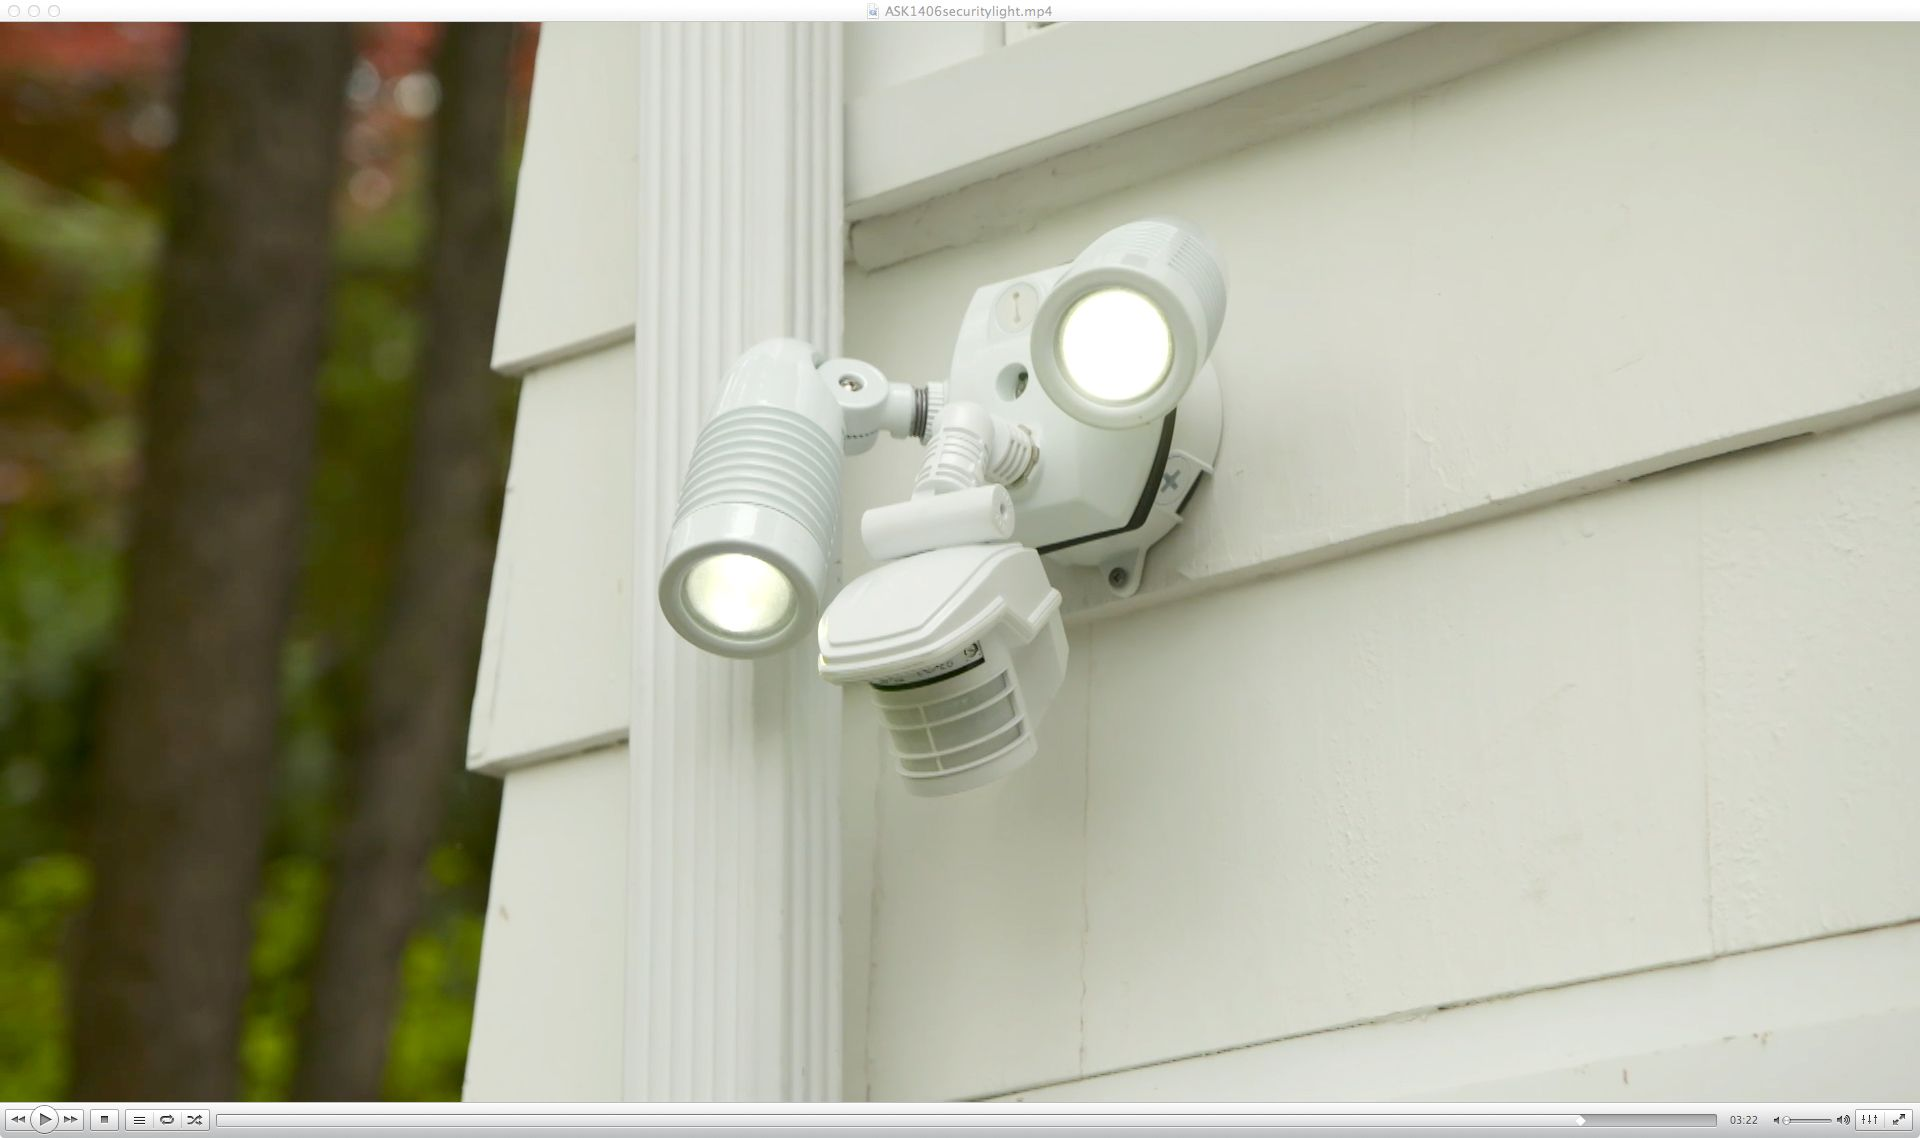 How To Install A Motion Activated Security Light Home Dyi Old House Electrical Wiring Ask This Master Electrician Scott Caron Installs Above Garage Illuminate Dark Driveway